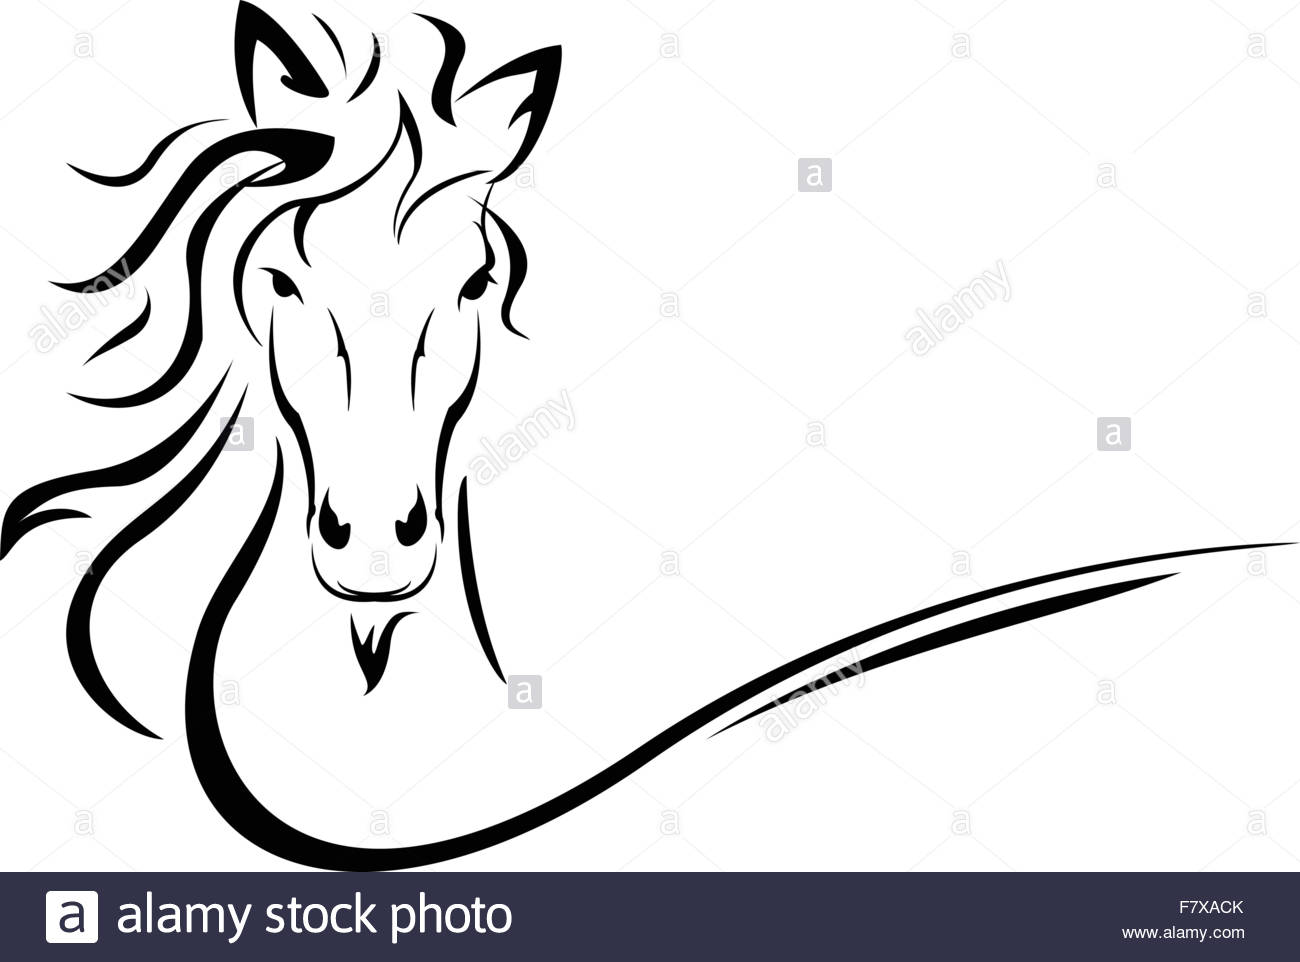 1300x962 Horse Head Vector Stock Vector Art Amp Illustration, Vector Image